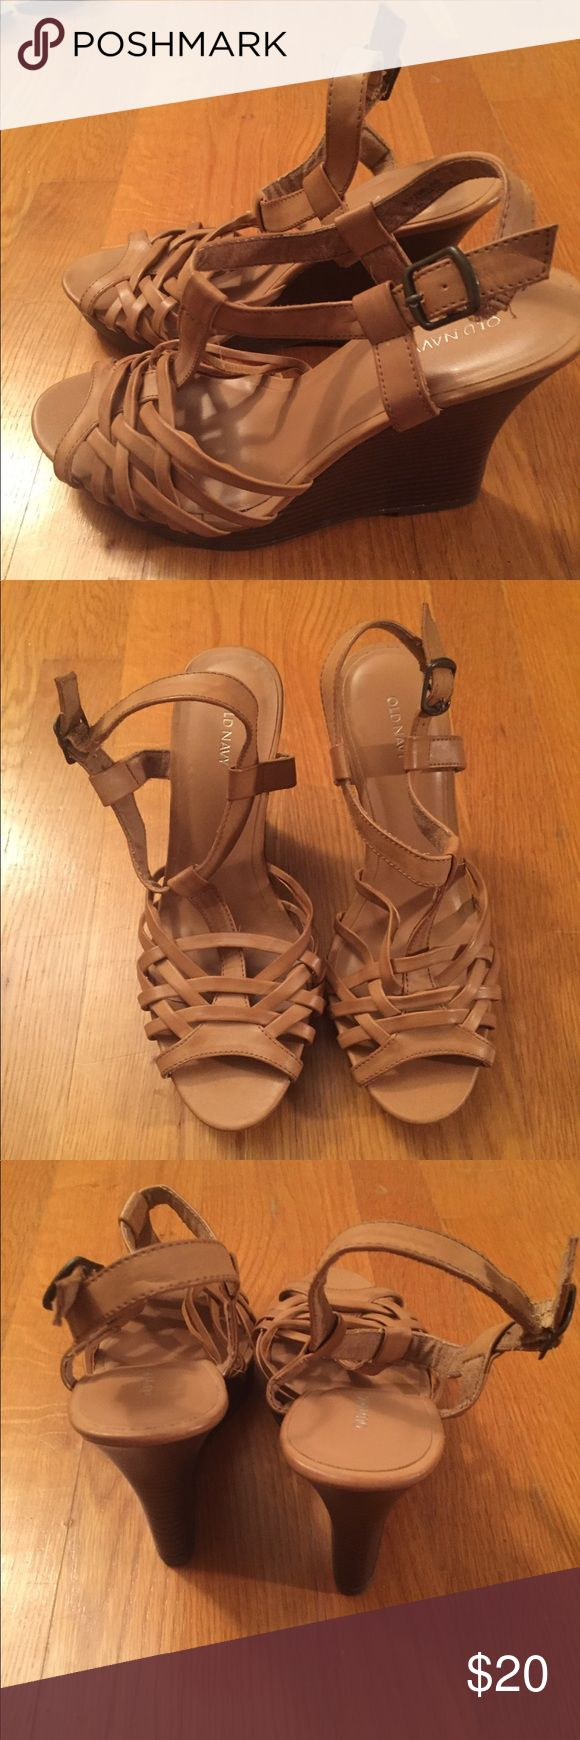 Old Navy wedge sandals Strappy brown wedge sandal from old navy. Never worn. Still has stickers on bottom. Old Navy Shoes Wedges